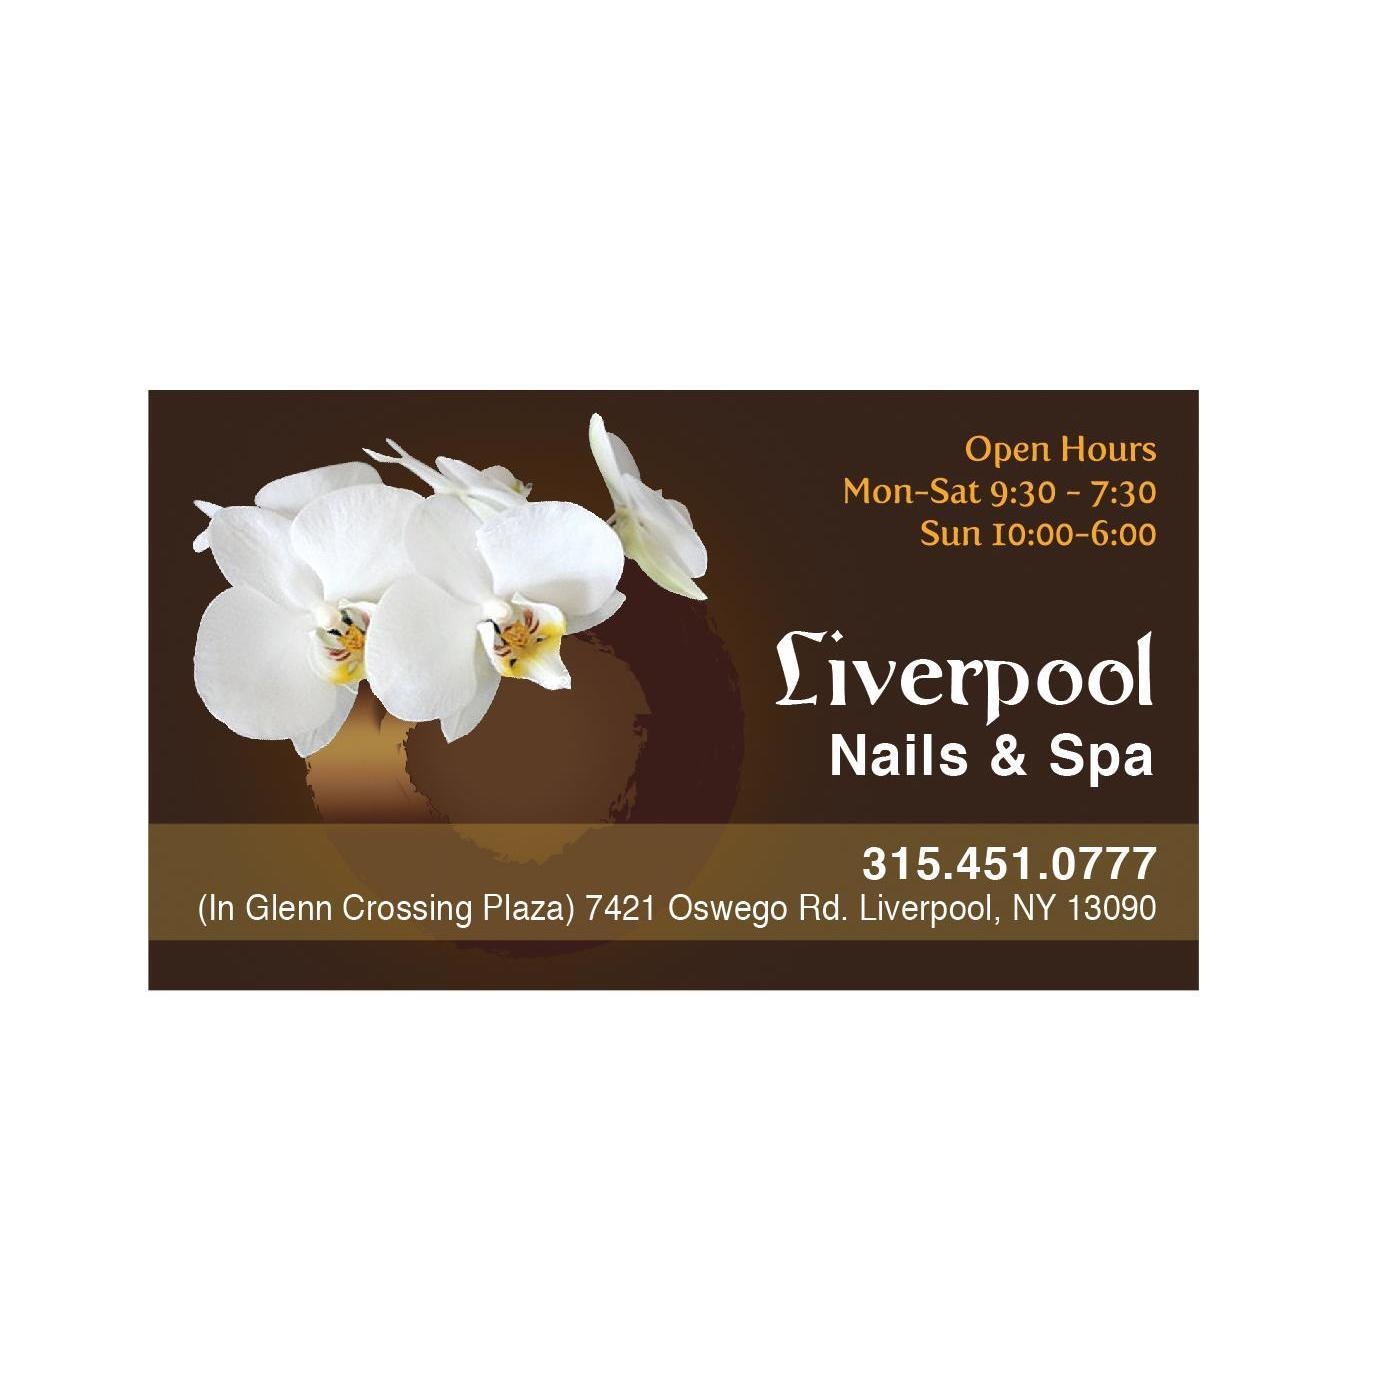 Liverpool Nails & Spa